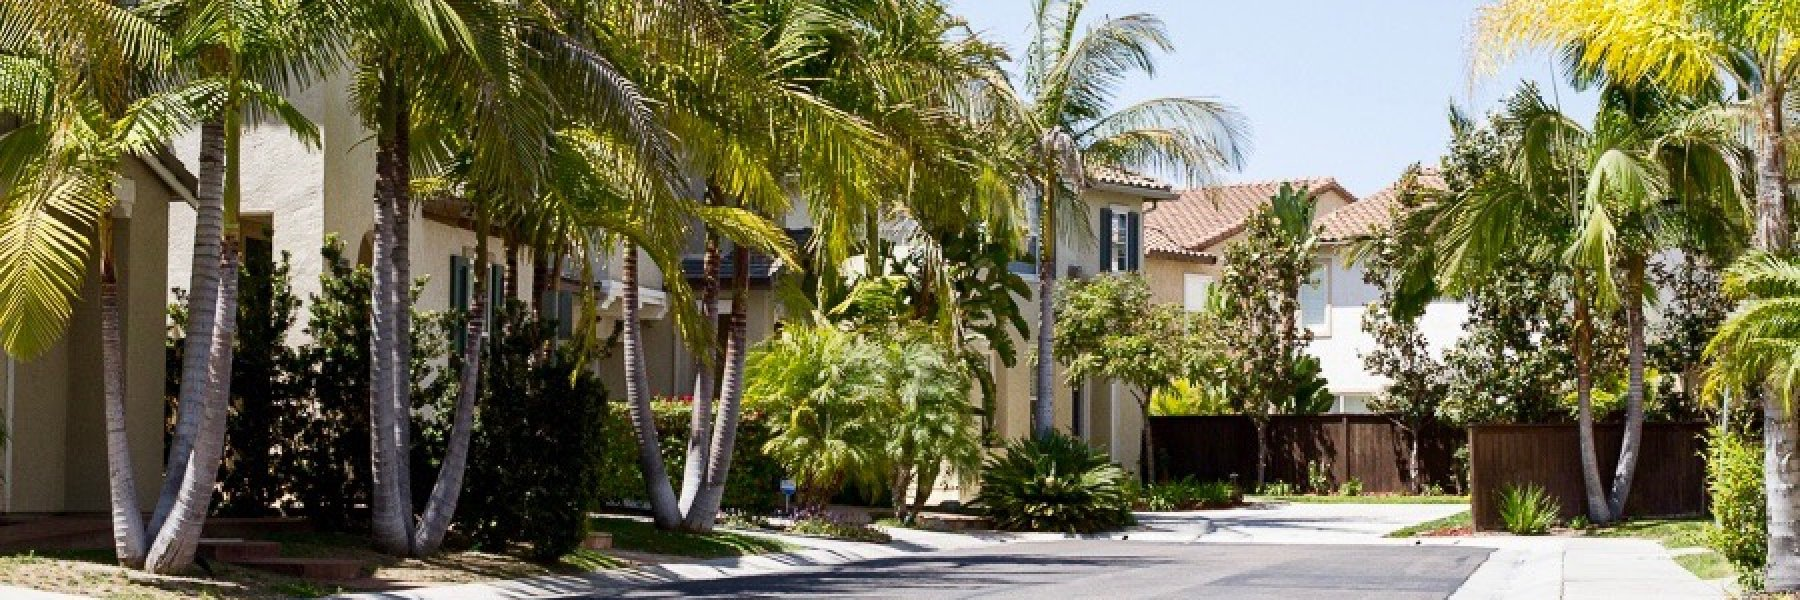 San Lorenza is a community of homes in San Diego California